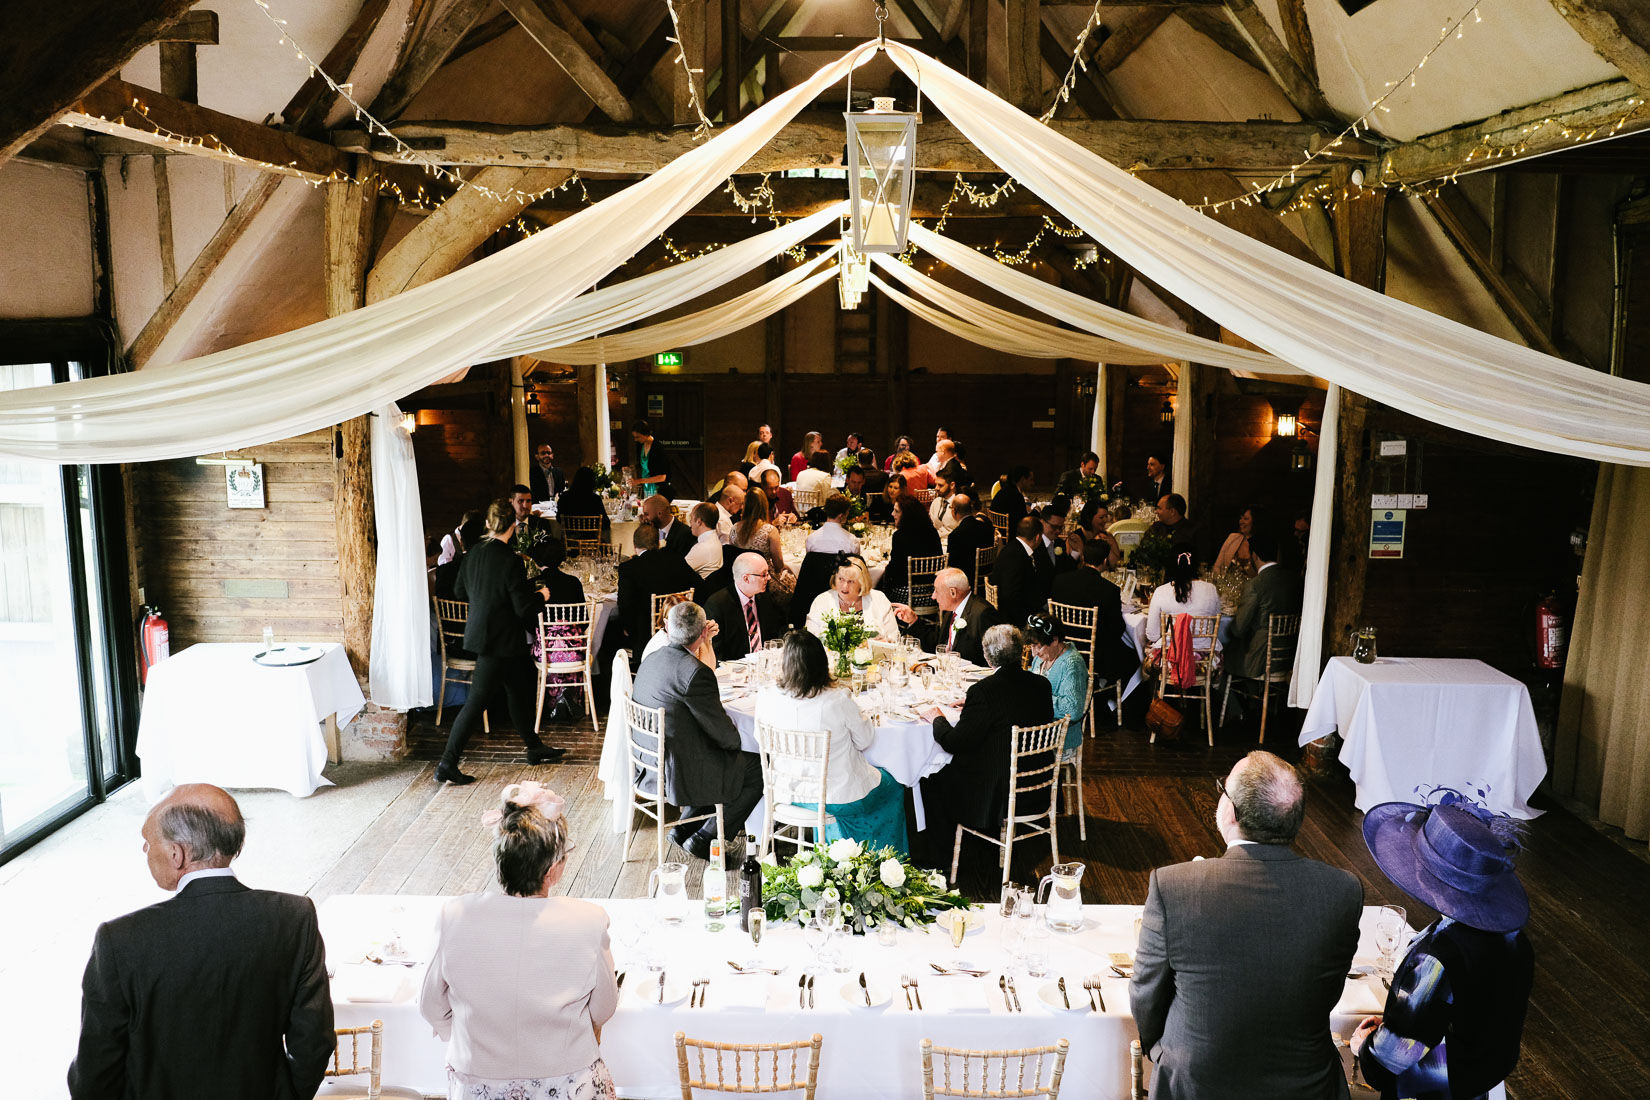 A view of Lains Barn wedding venue, Oxfordshire, from the rear balcony